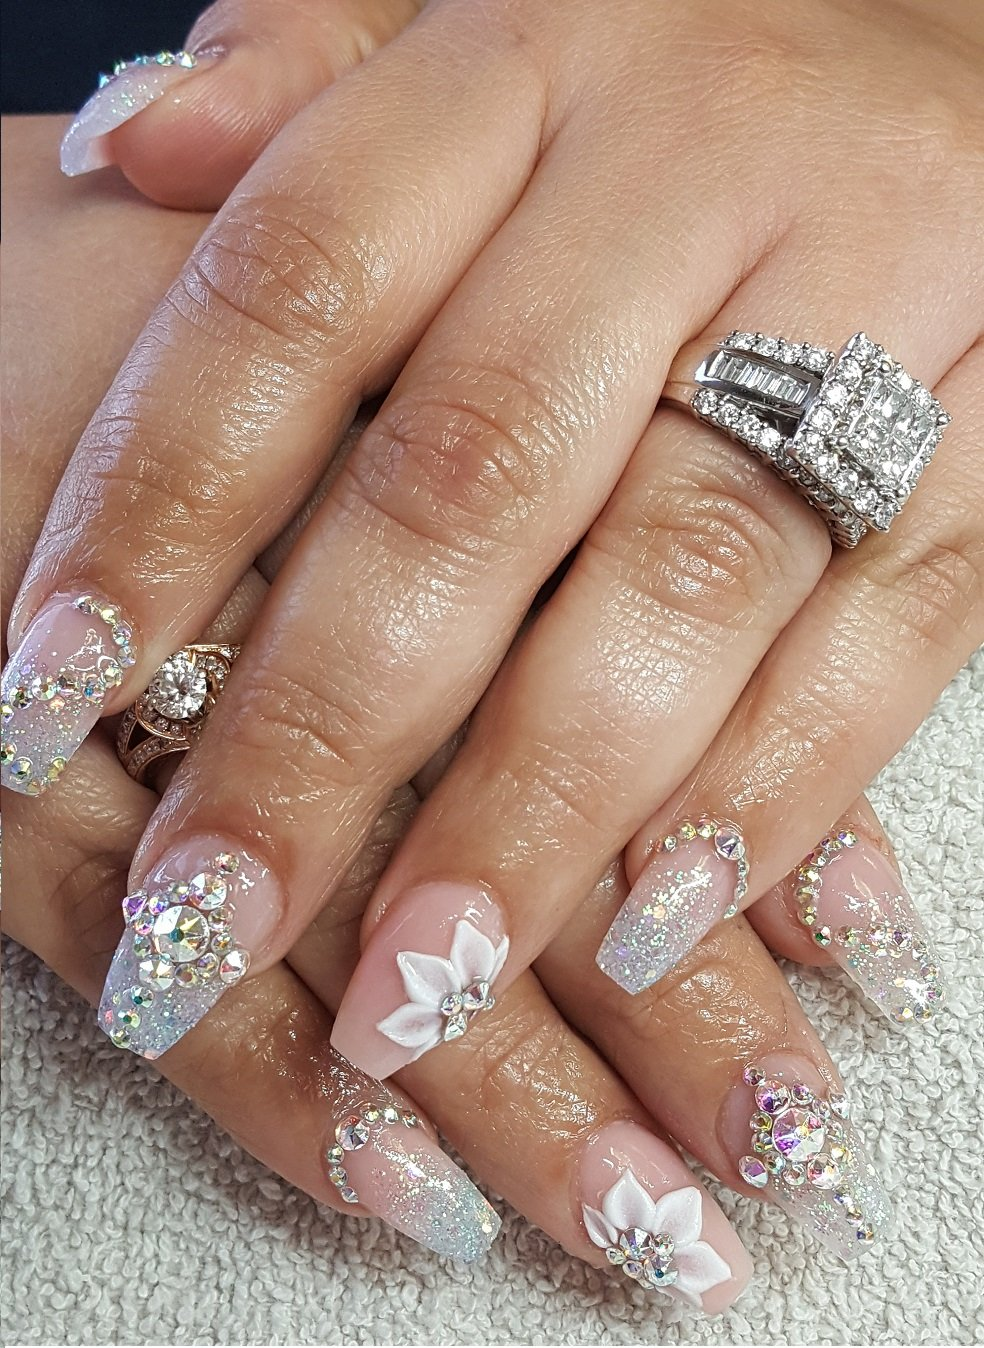 Bling Nails With Acrylic Details